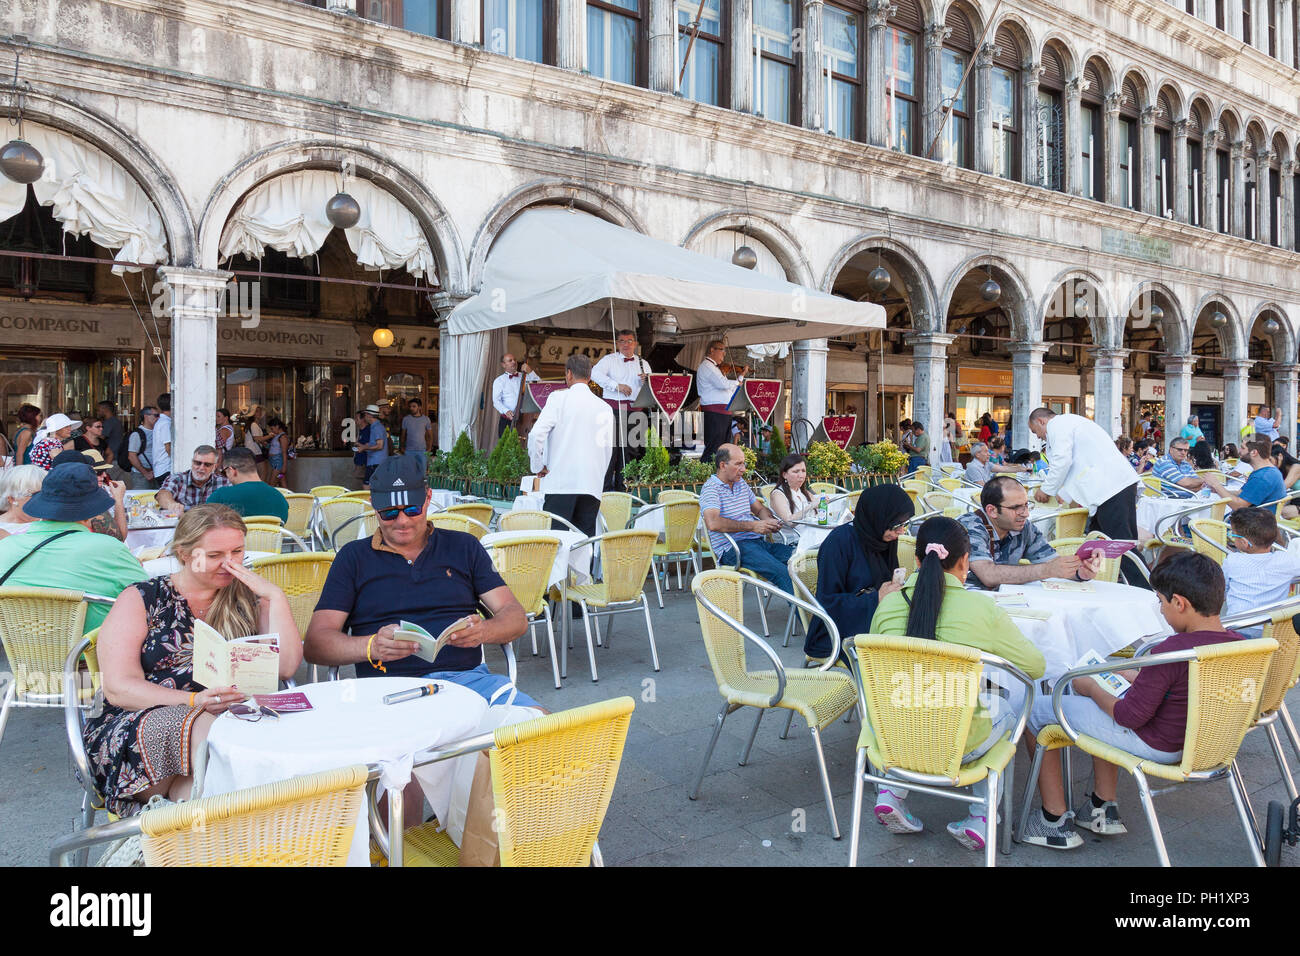 Tourists eating and drinking at Caffe Lavena, Piazza San Marco, Venice, Veneto, Italy while listening to a live music performance at outdoor tables - Stock Image